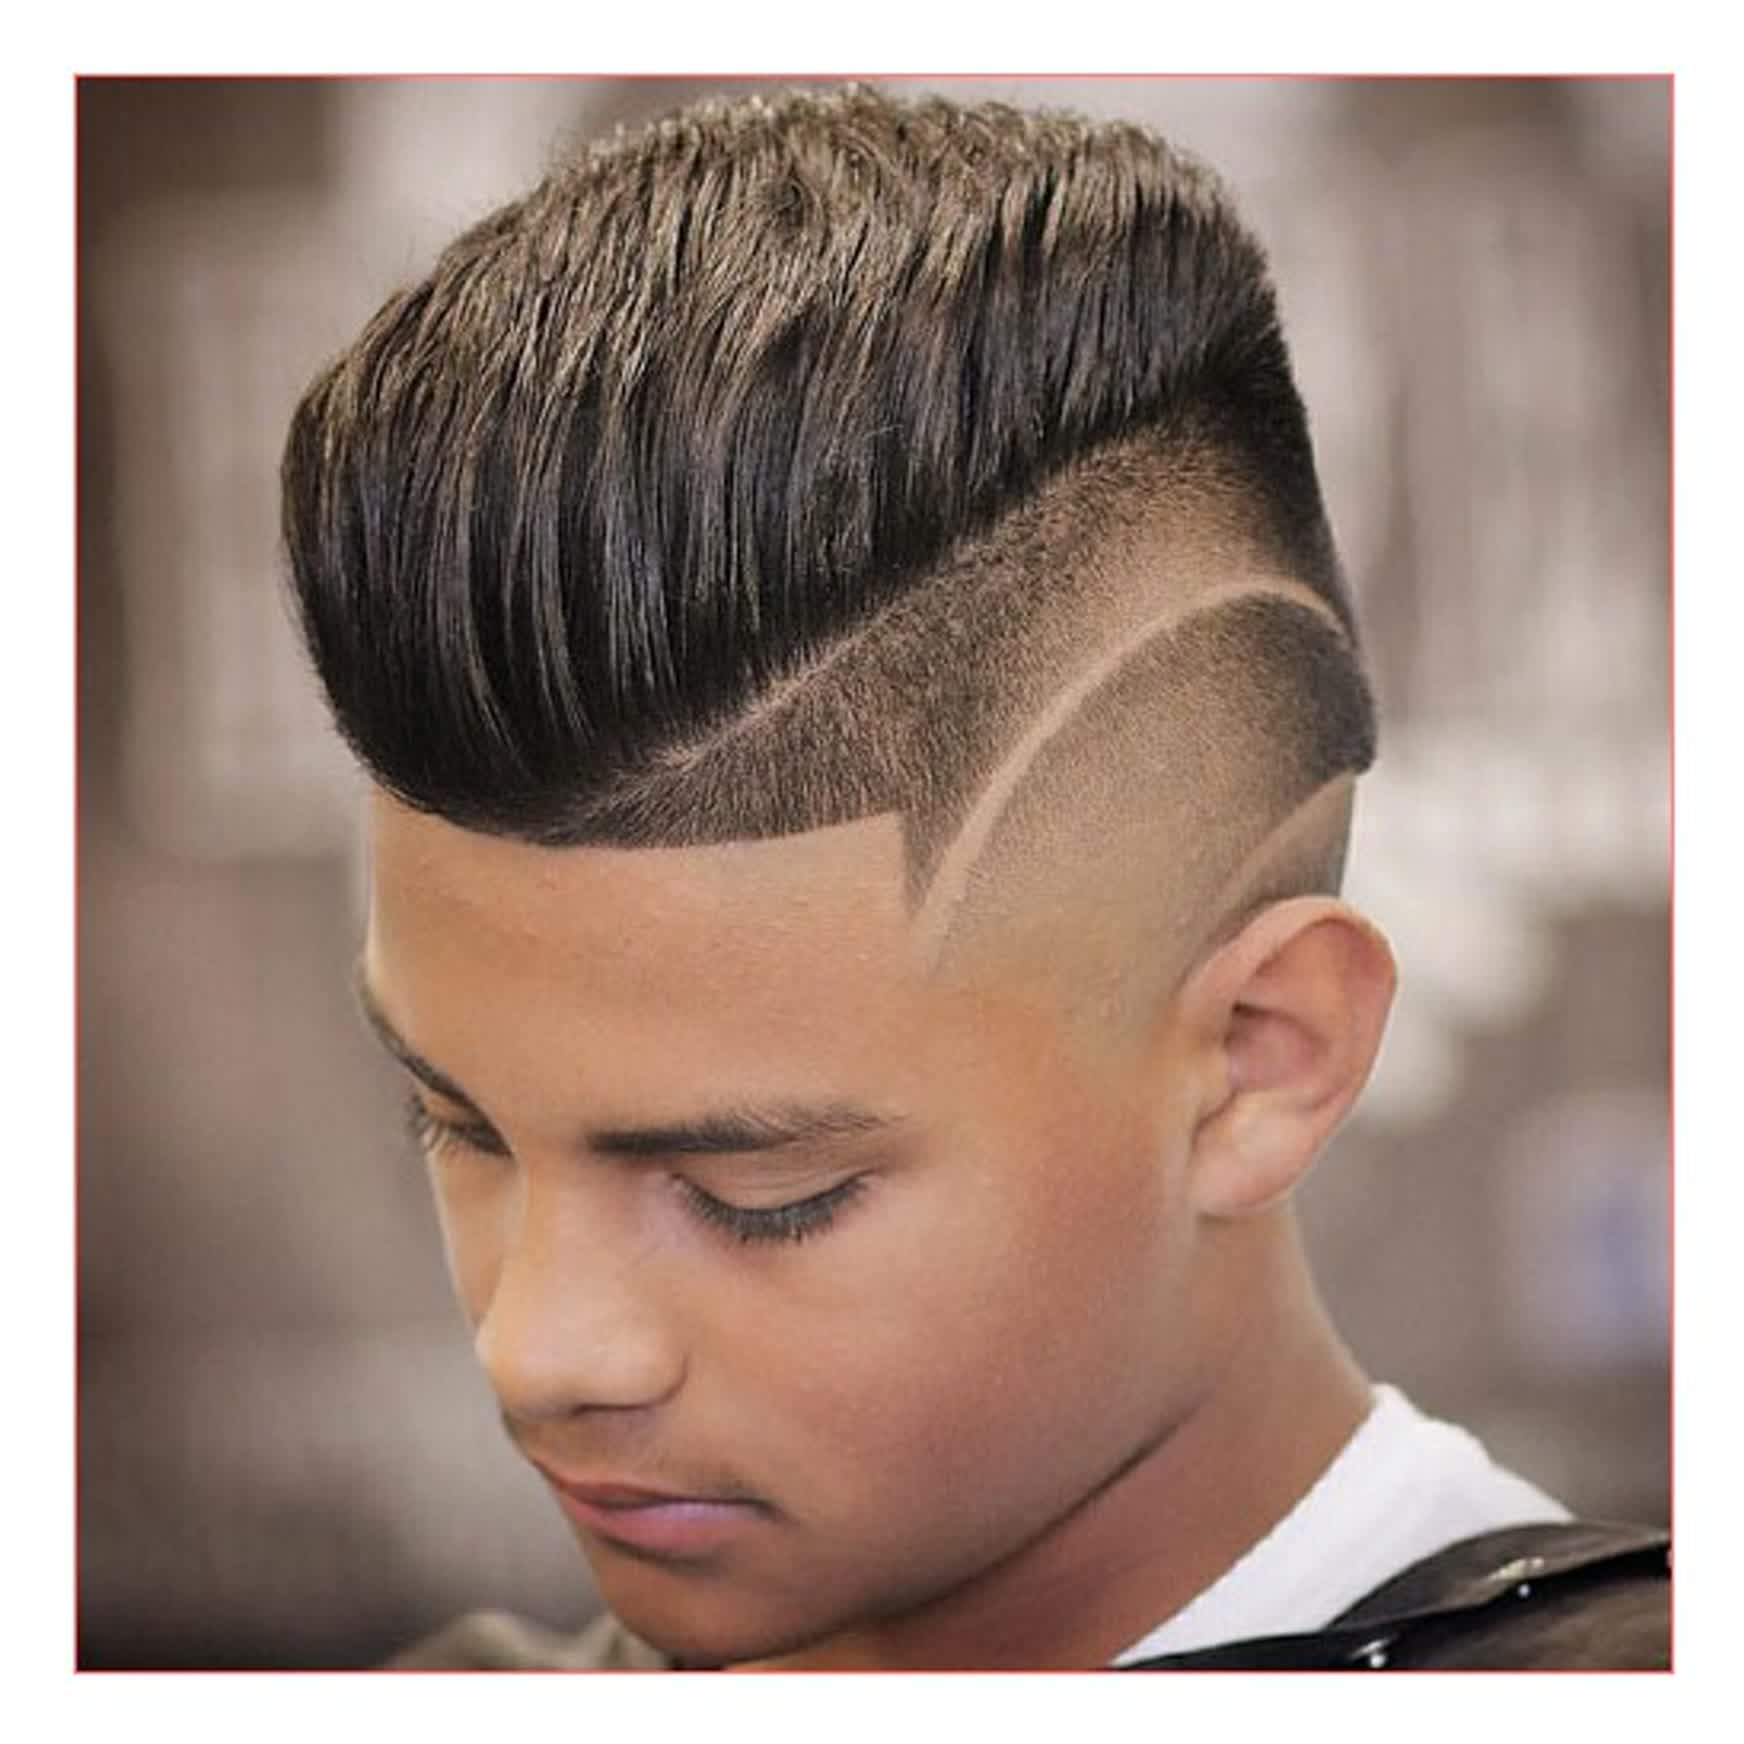 Cool Hairstyles Men  Pompadour Curly Hairstyle